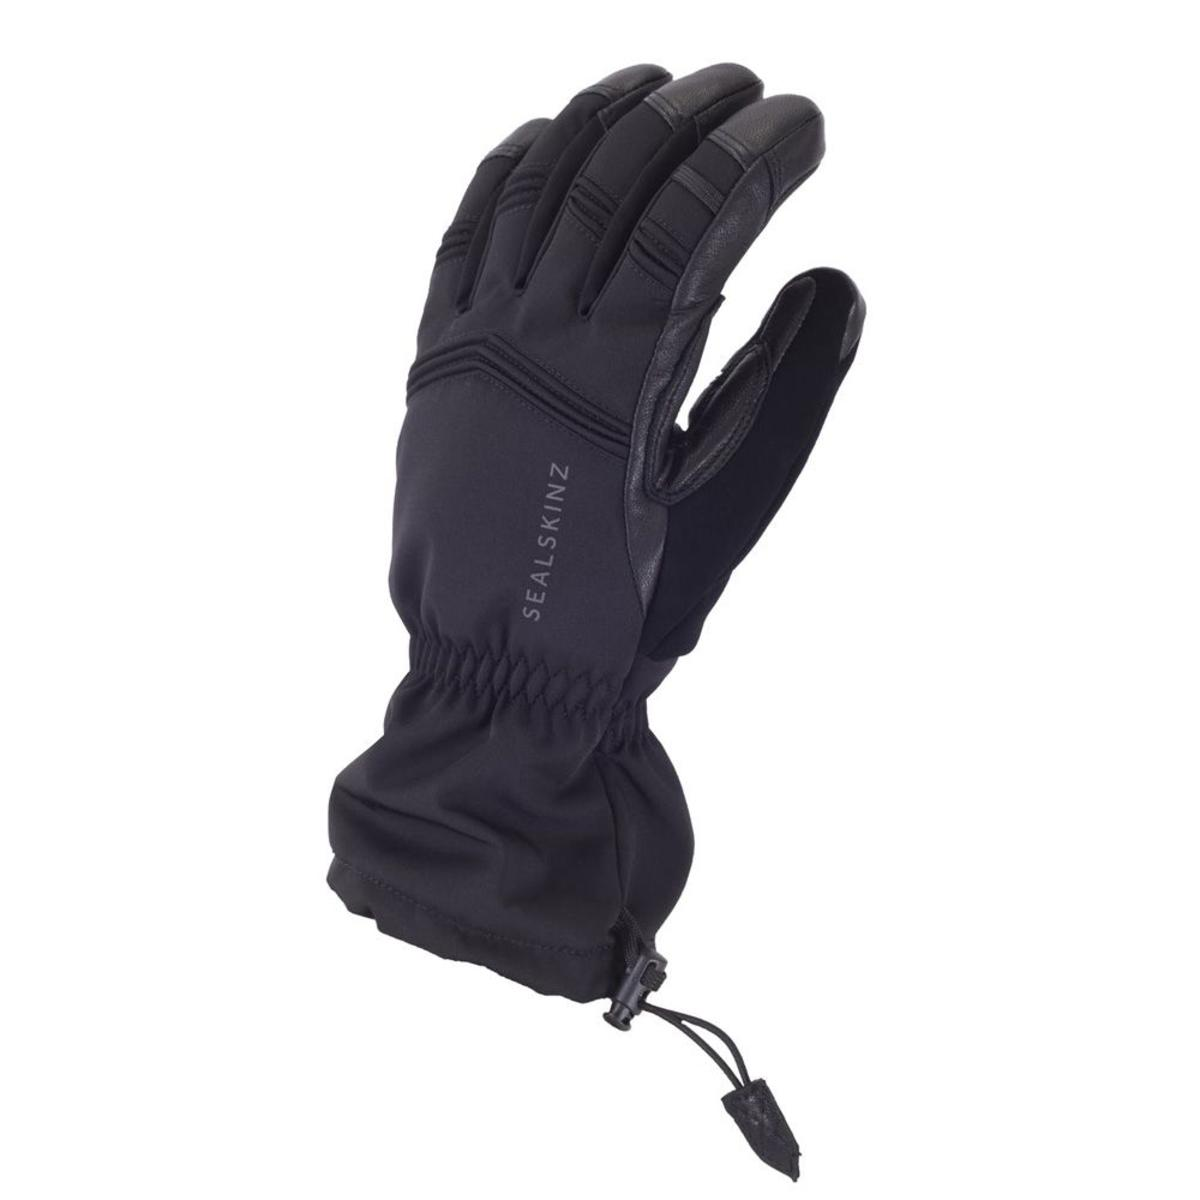 SealSkinz Men's Waterproof Extreme Cold Weather Gauntlets